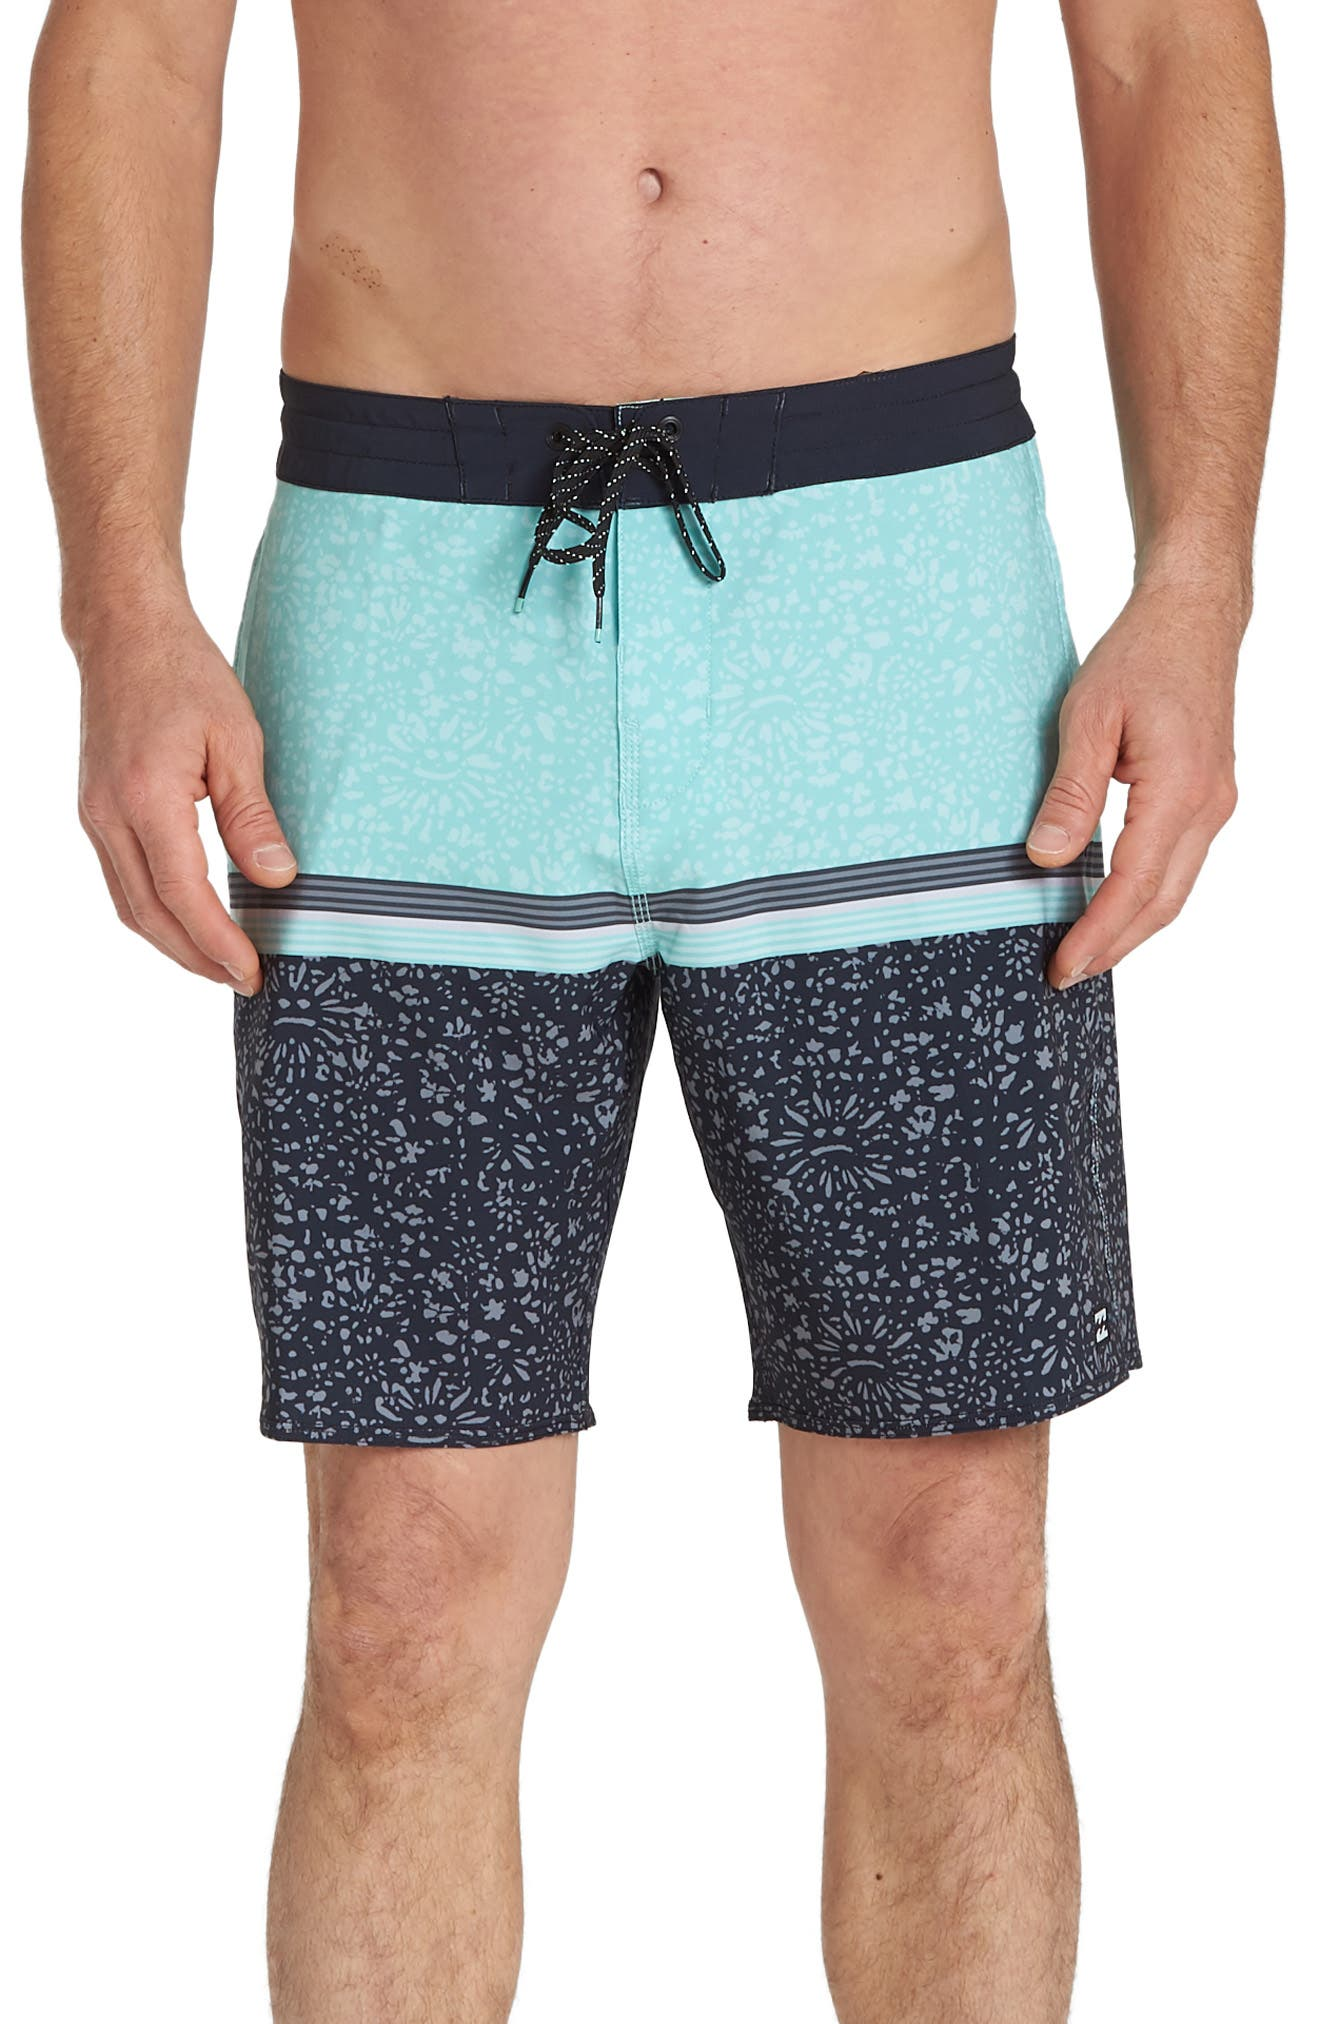 And Beachwear Swimwear Billabong Men's BrCWxoed